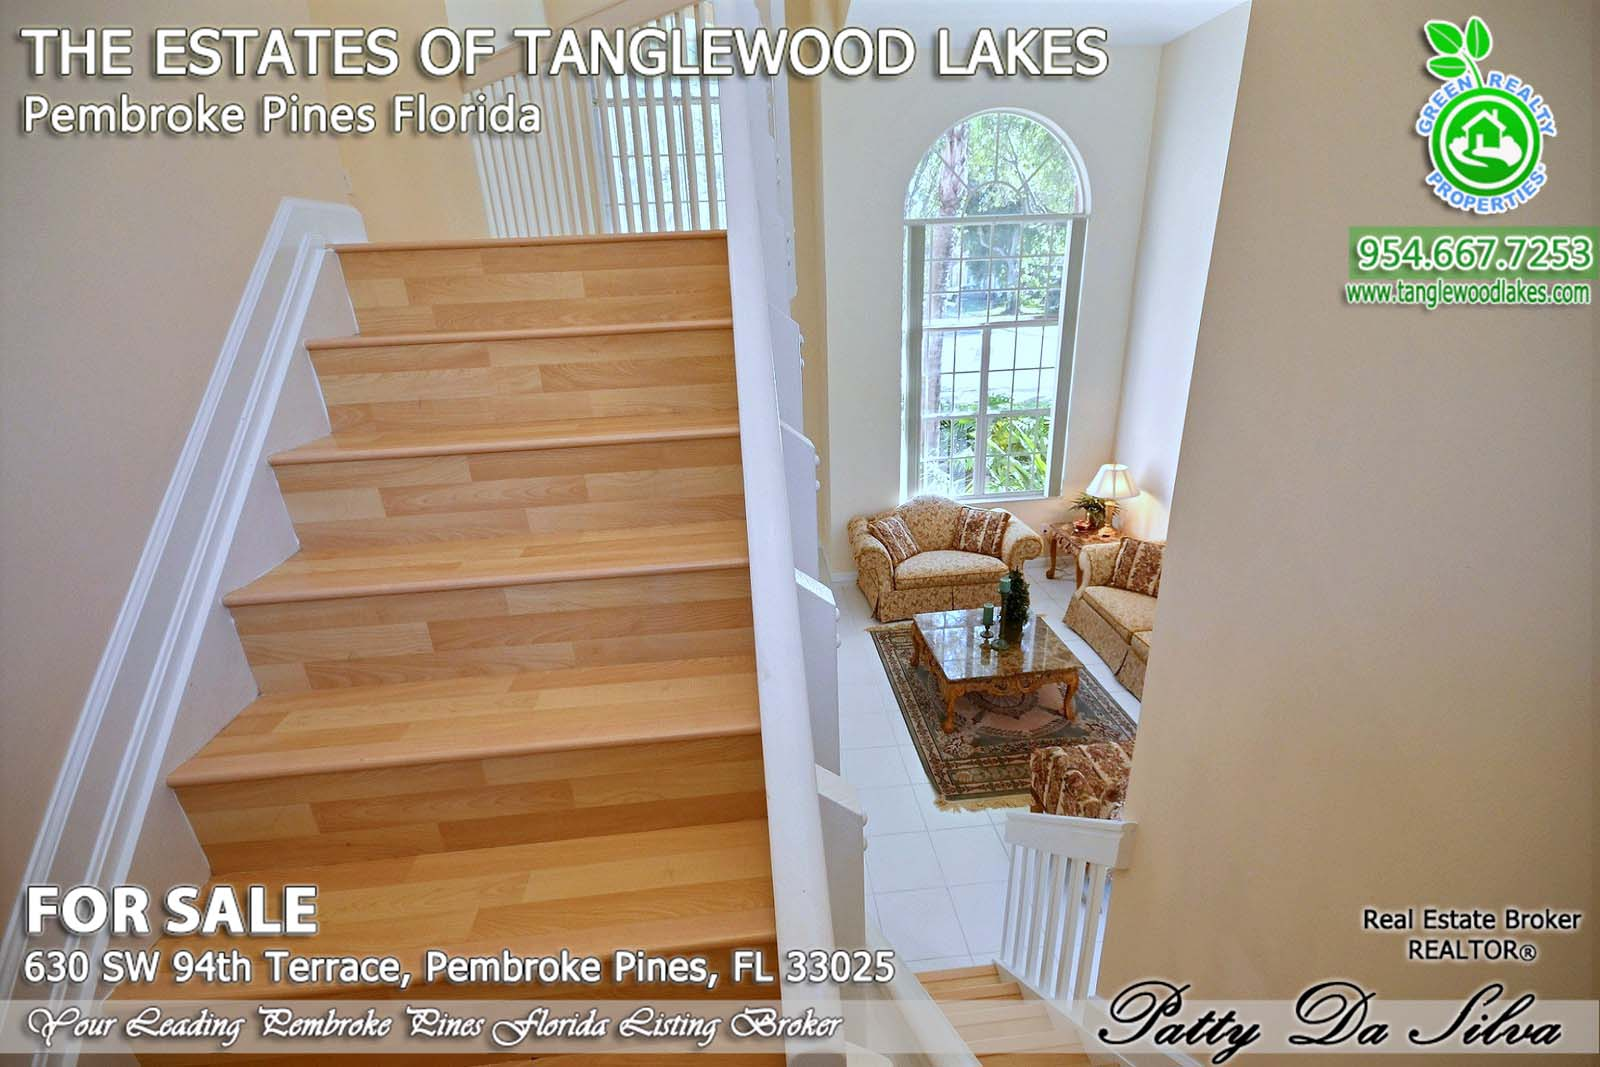 Real Estate in Tanglewood Lakes Pembroke Pines